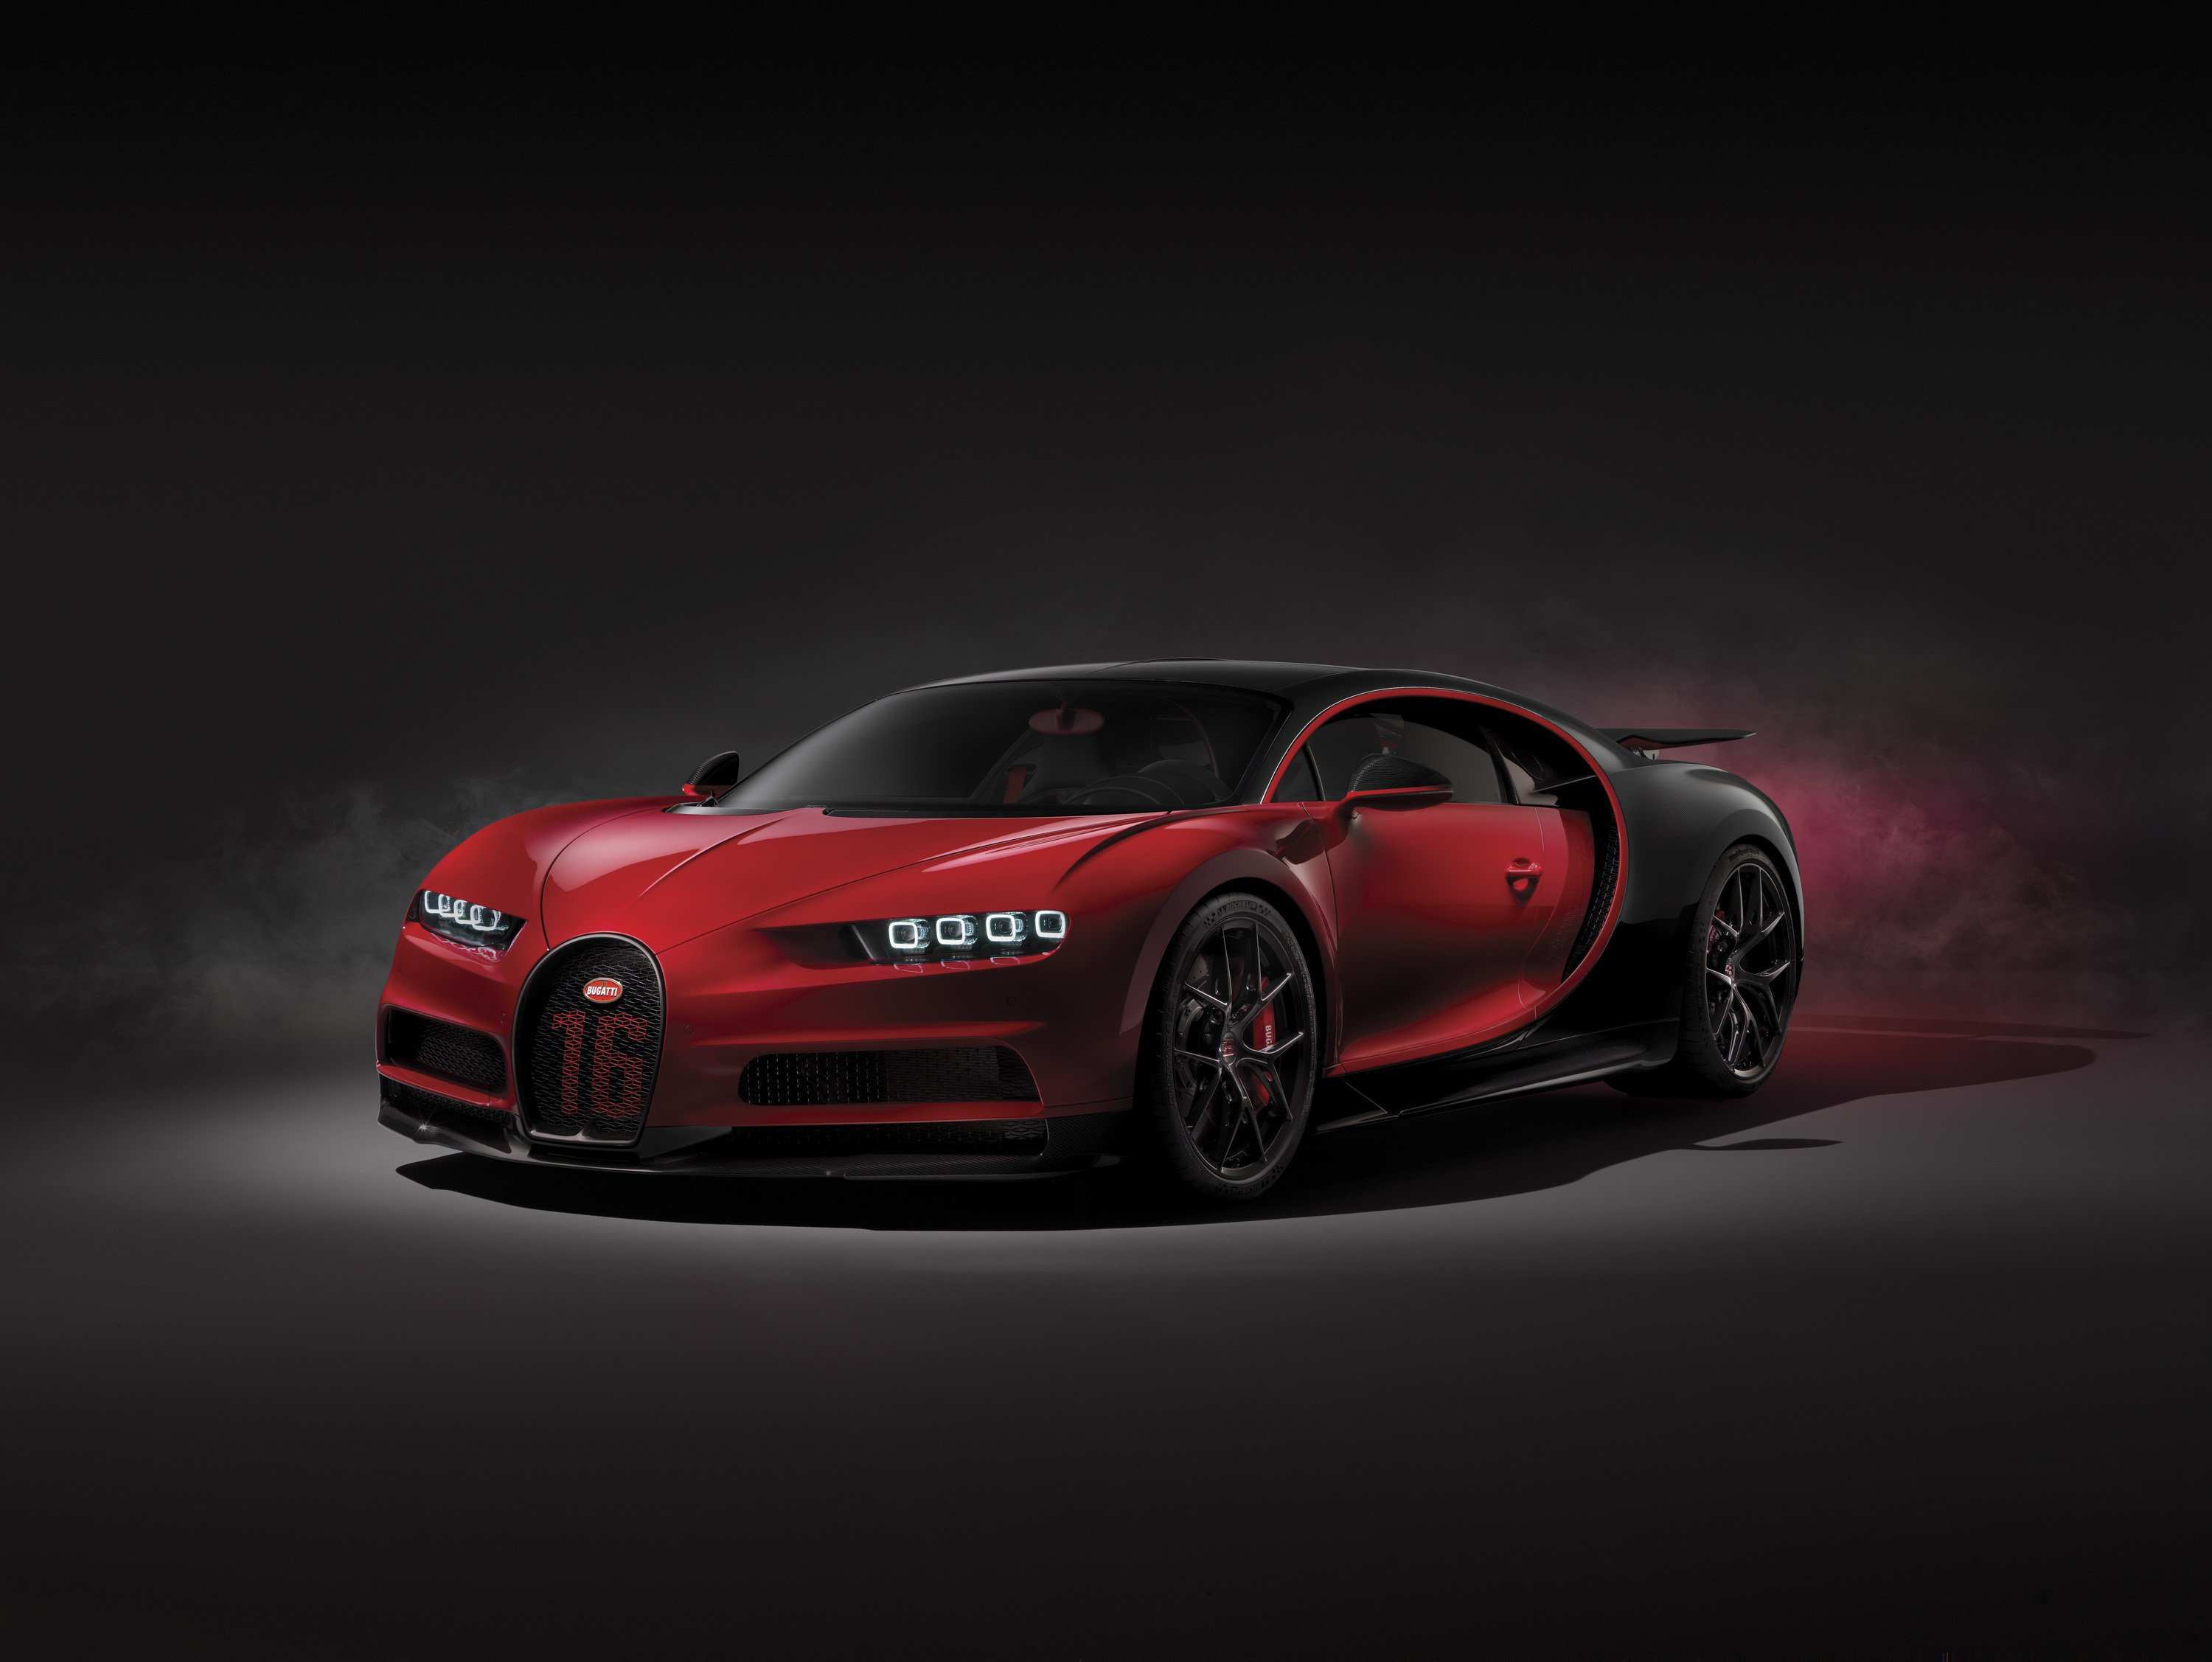 97 New 2019 Bugatti Veyron Top Speed Price And Review